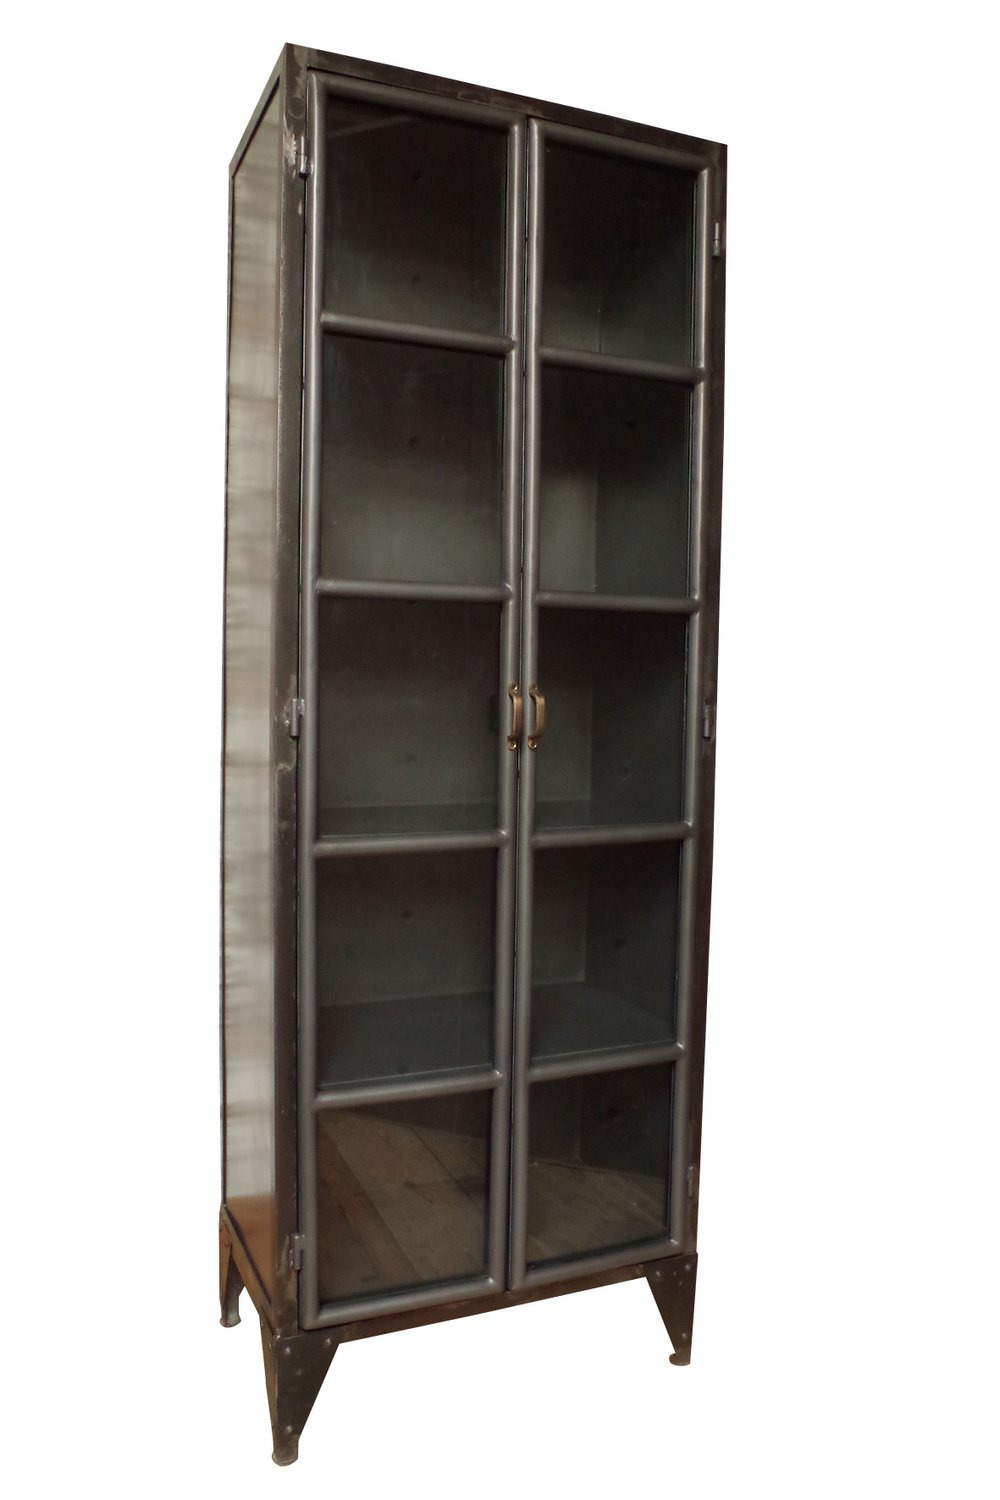 Industrial Iron and Glass Cupboard Cut Out 1000x